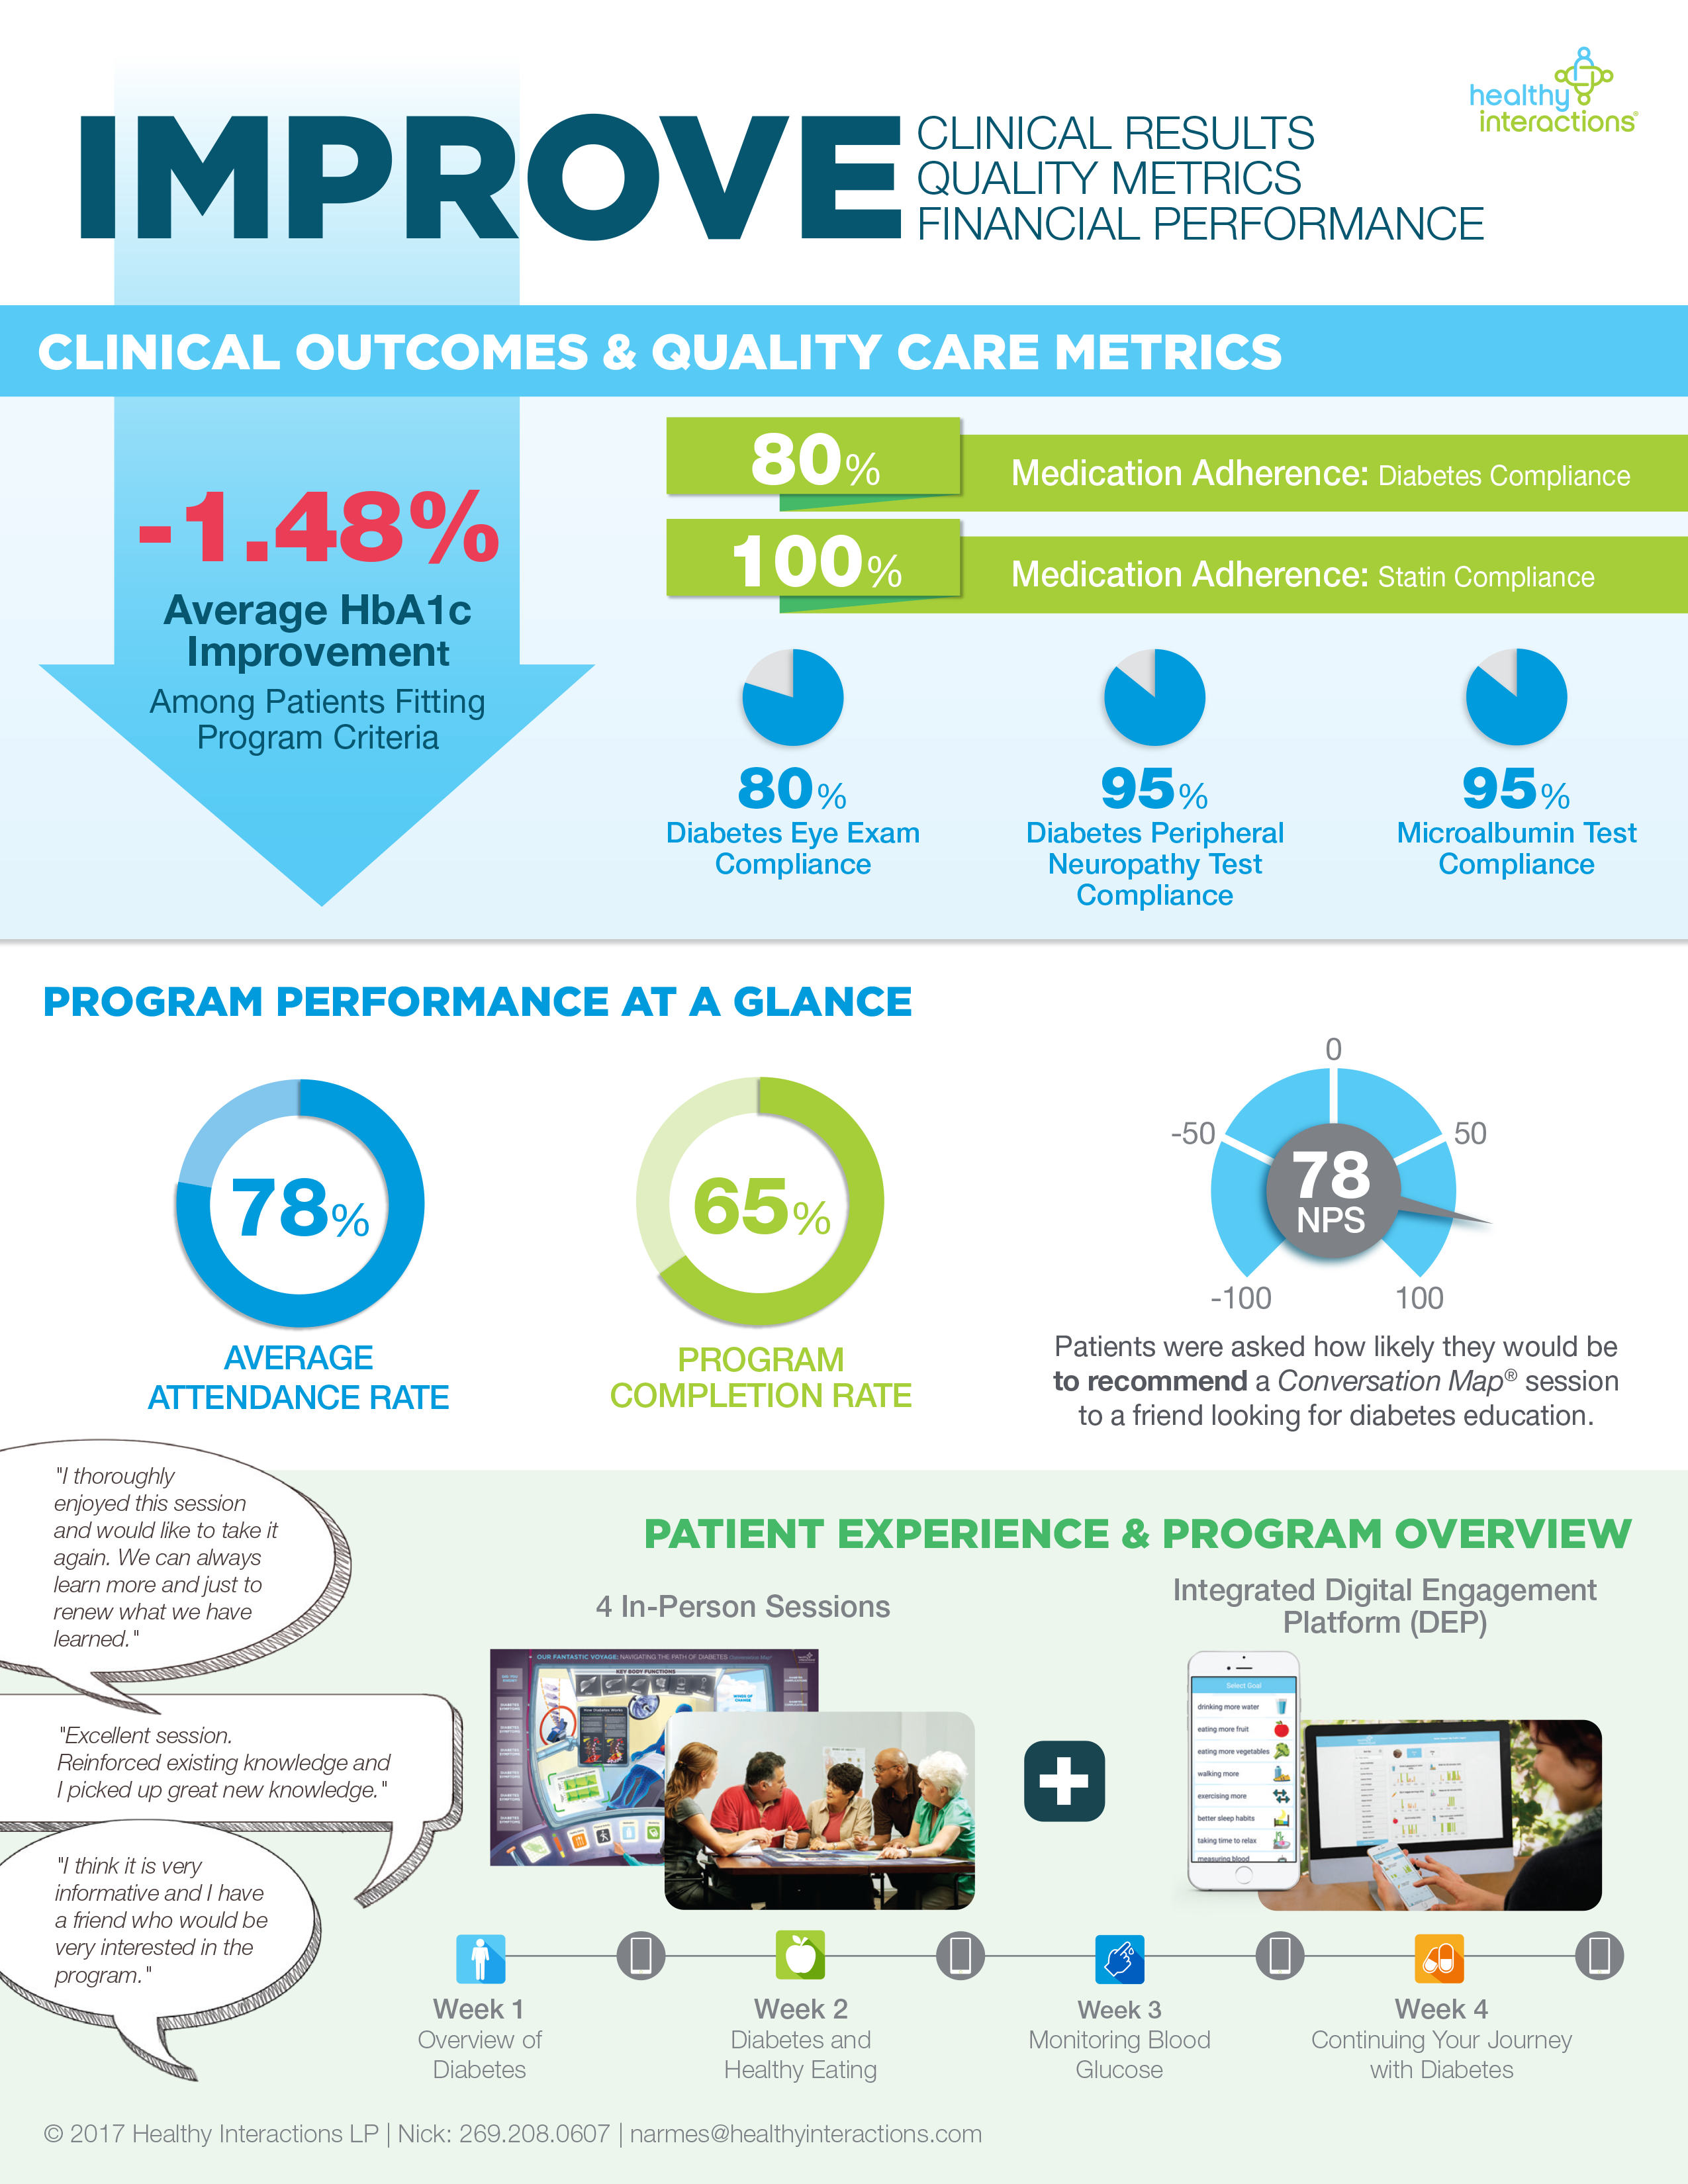 Healthy Interactions announces the latest results and clinical outcomes from one of the nation's largest health systems using Integrated Diabetes Program